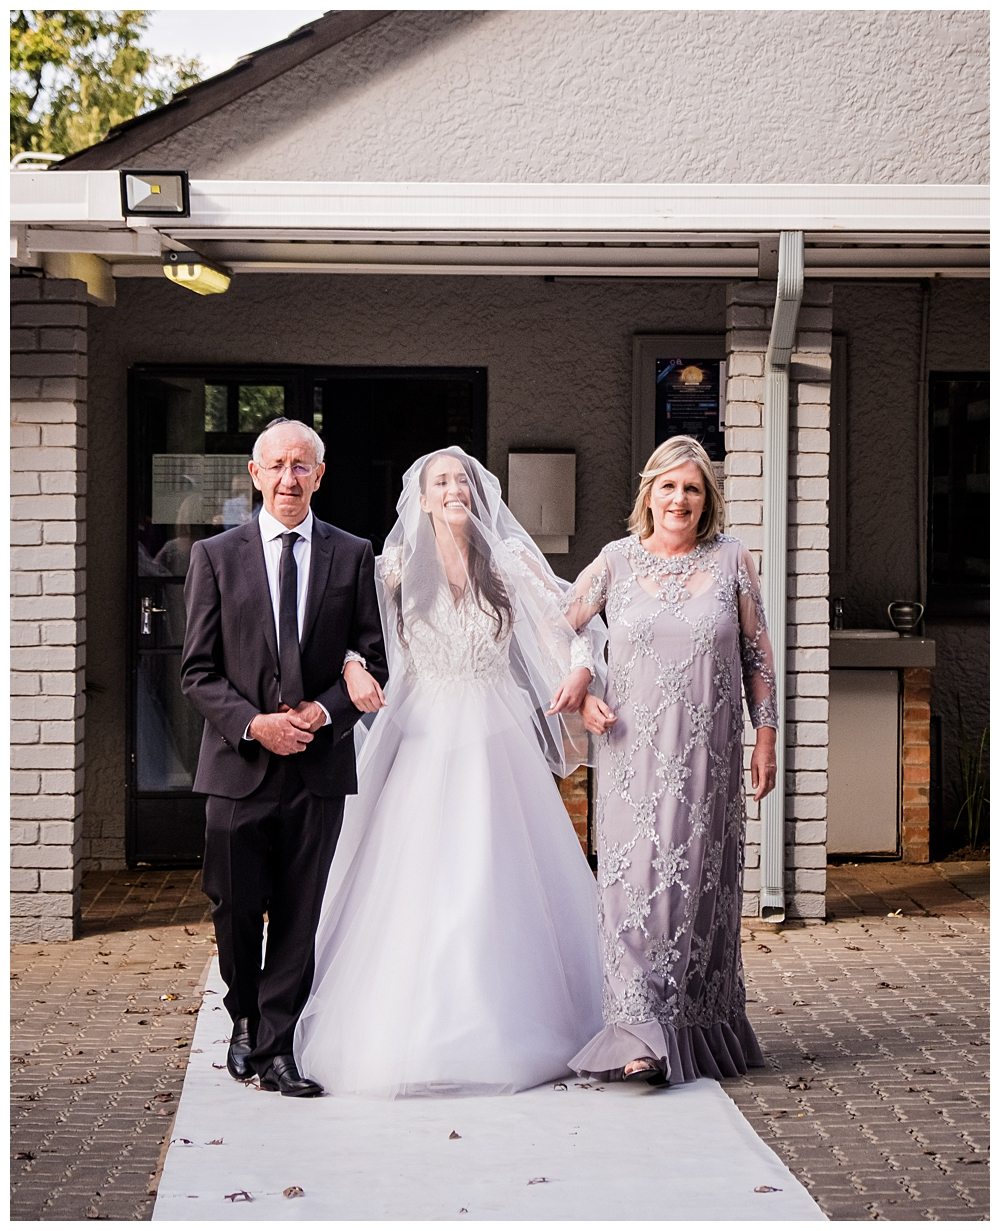 Best_Wedding_Photographer_AlexanderSmith_1682.jpg